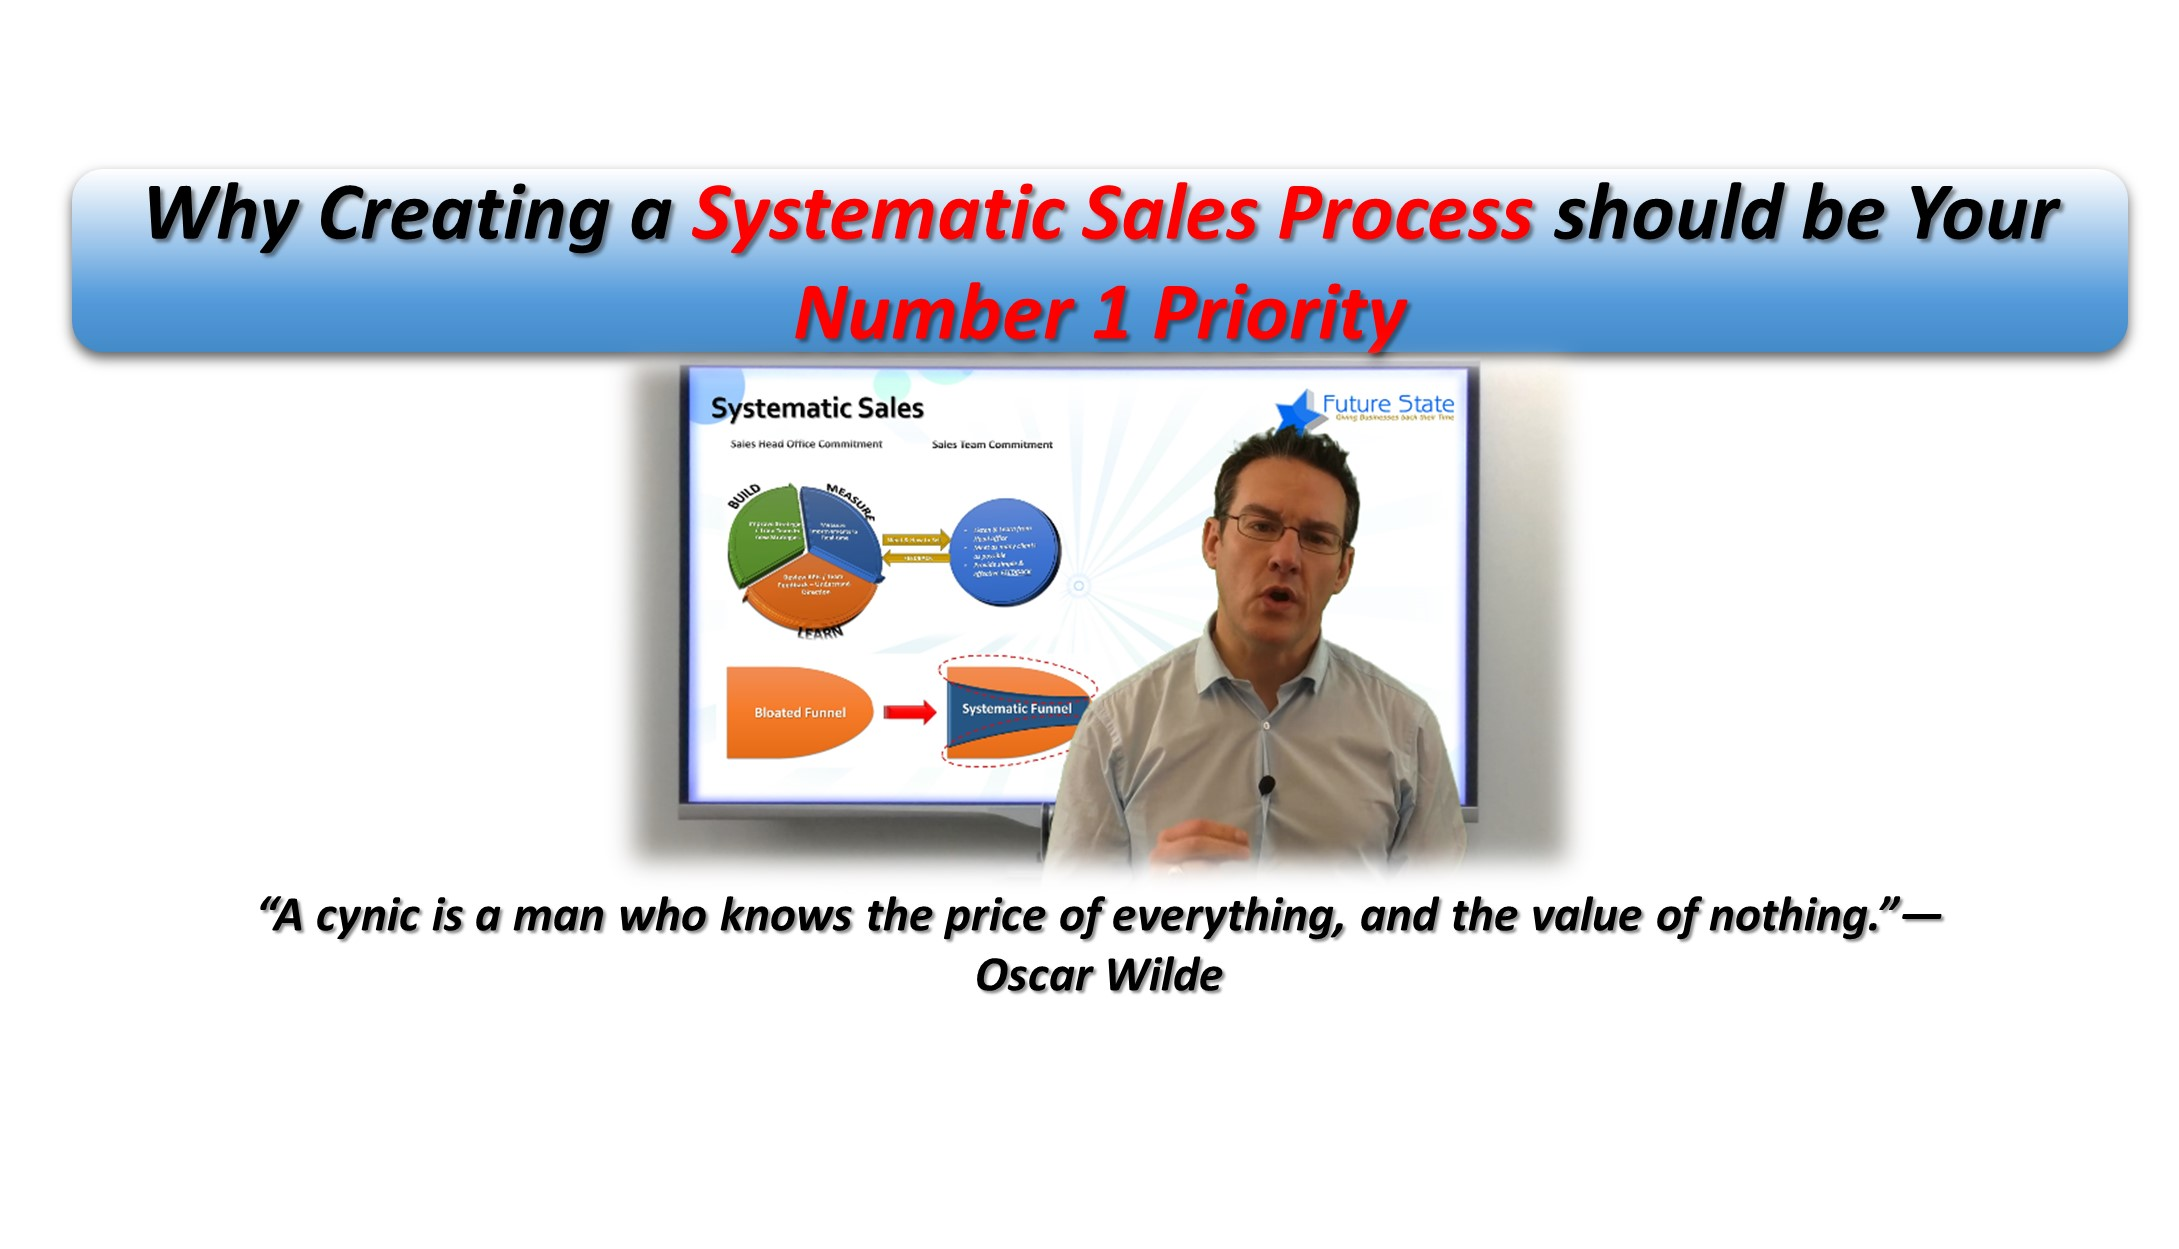 Why Creating a Systematic Sales Process should be Your Number 1 Priority